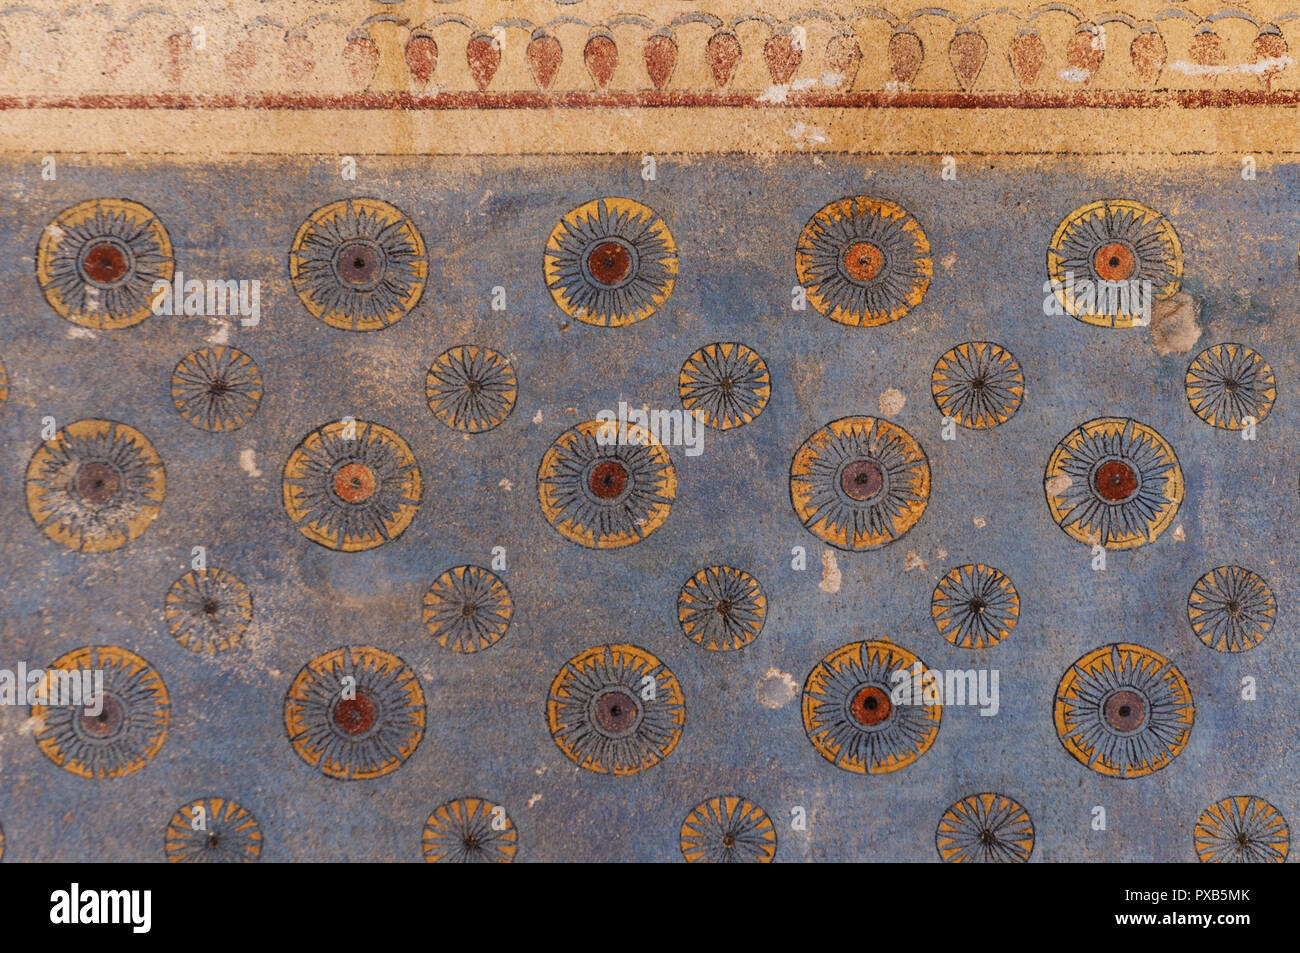 Armenia, Yerevan, Erebuni Fortress, Erebuni Museum of History, painting display Stock Photo